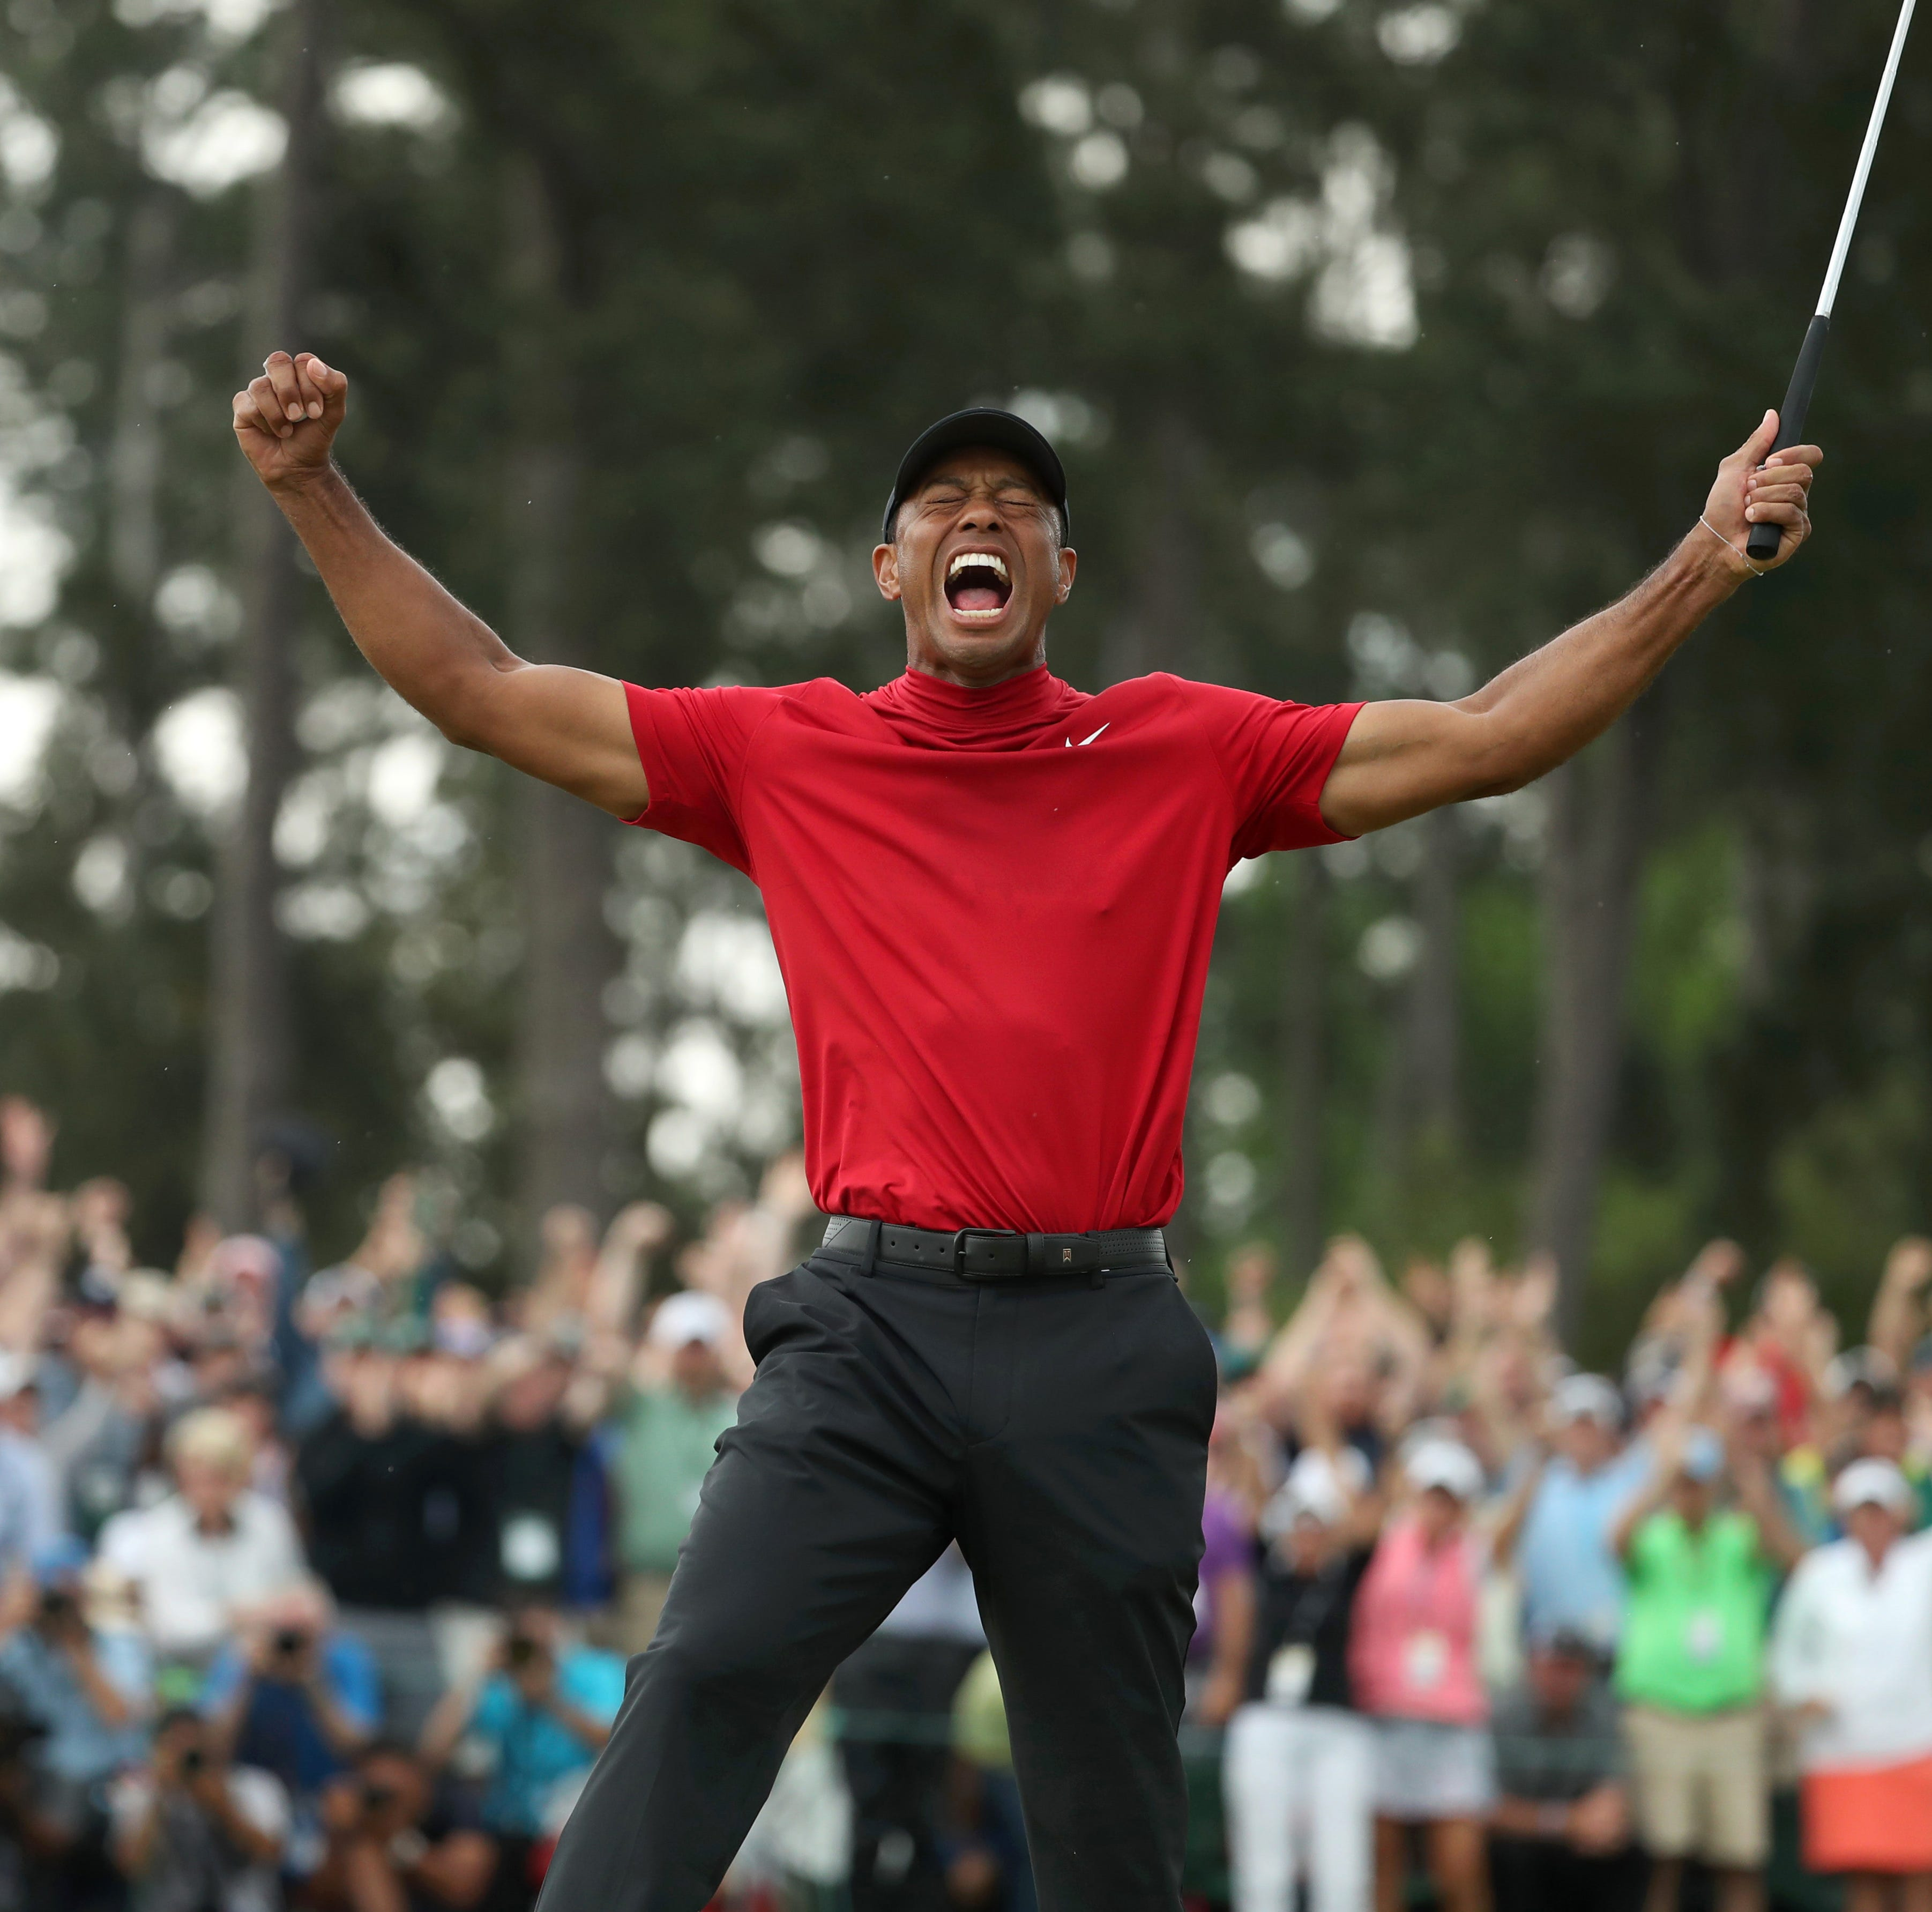 RIT grad captures definitive Tiger Woods victory moment